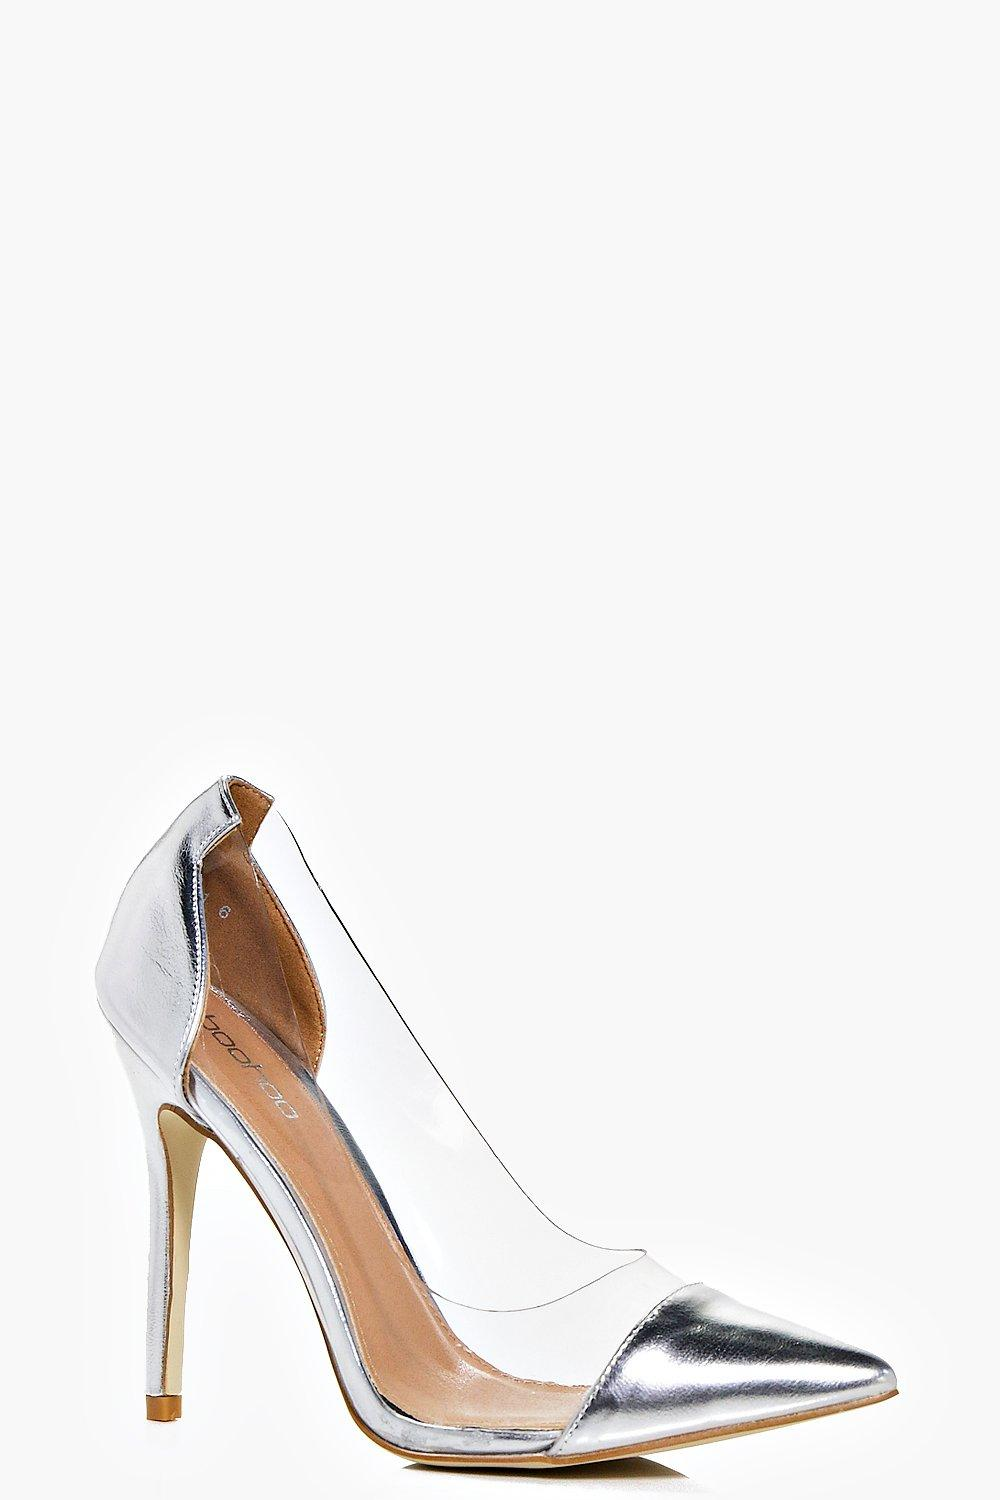 boohoo Clear Metallic Courts - silver